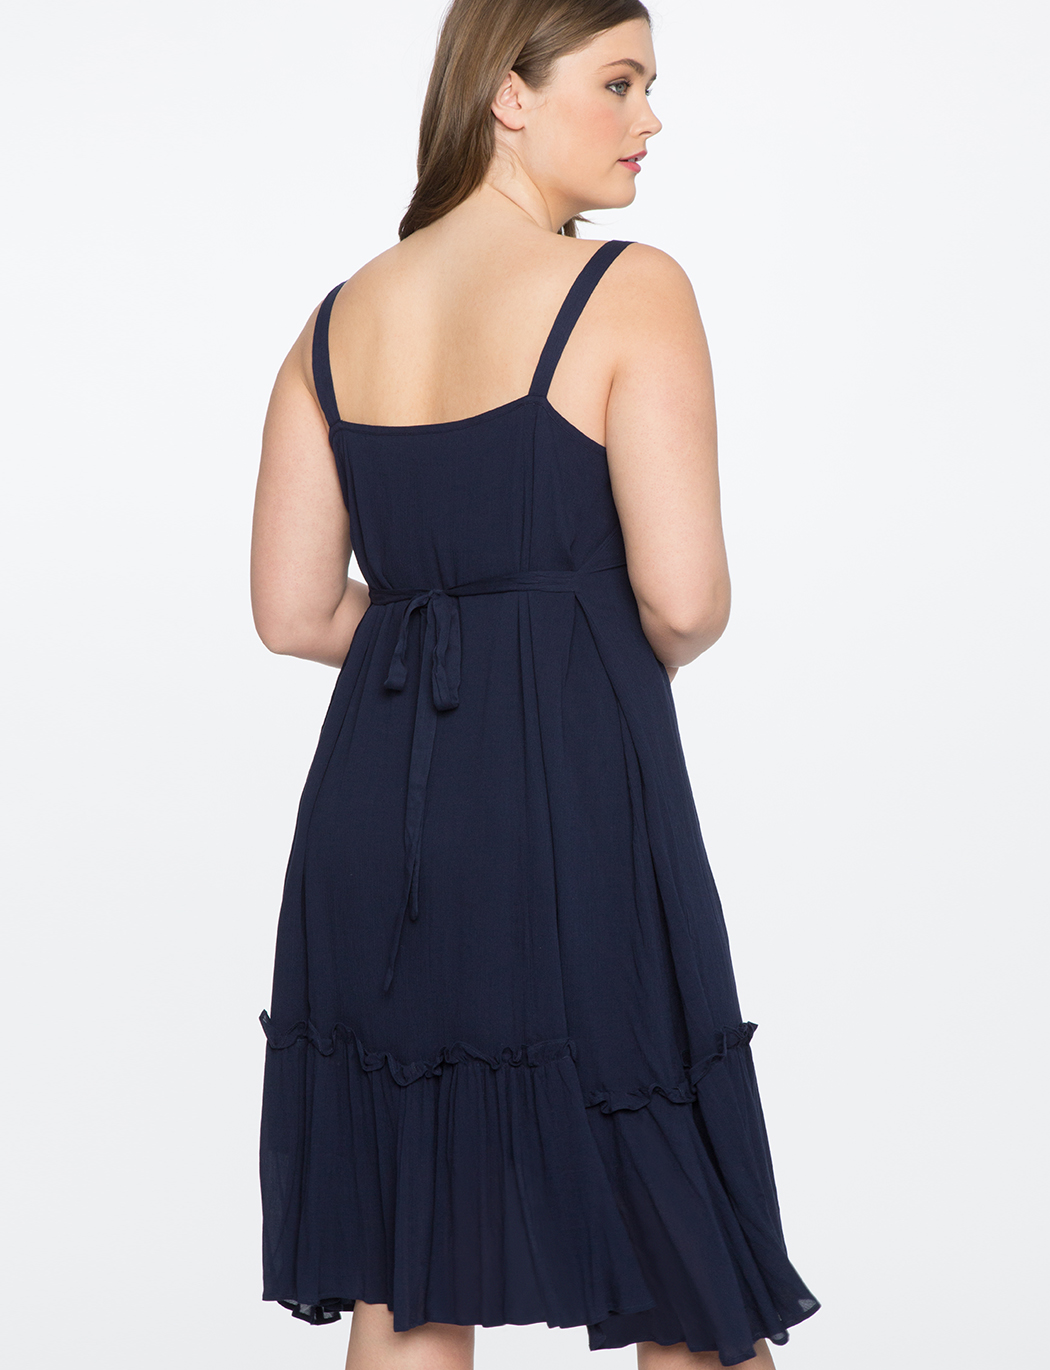 Pom Pom Trim Dress